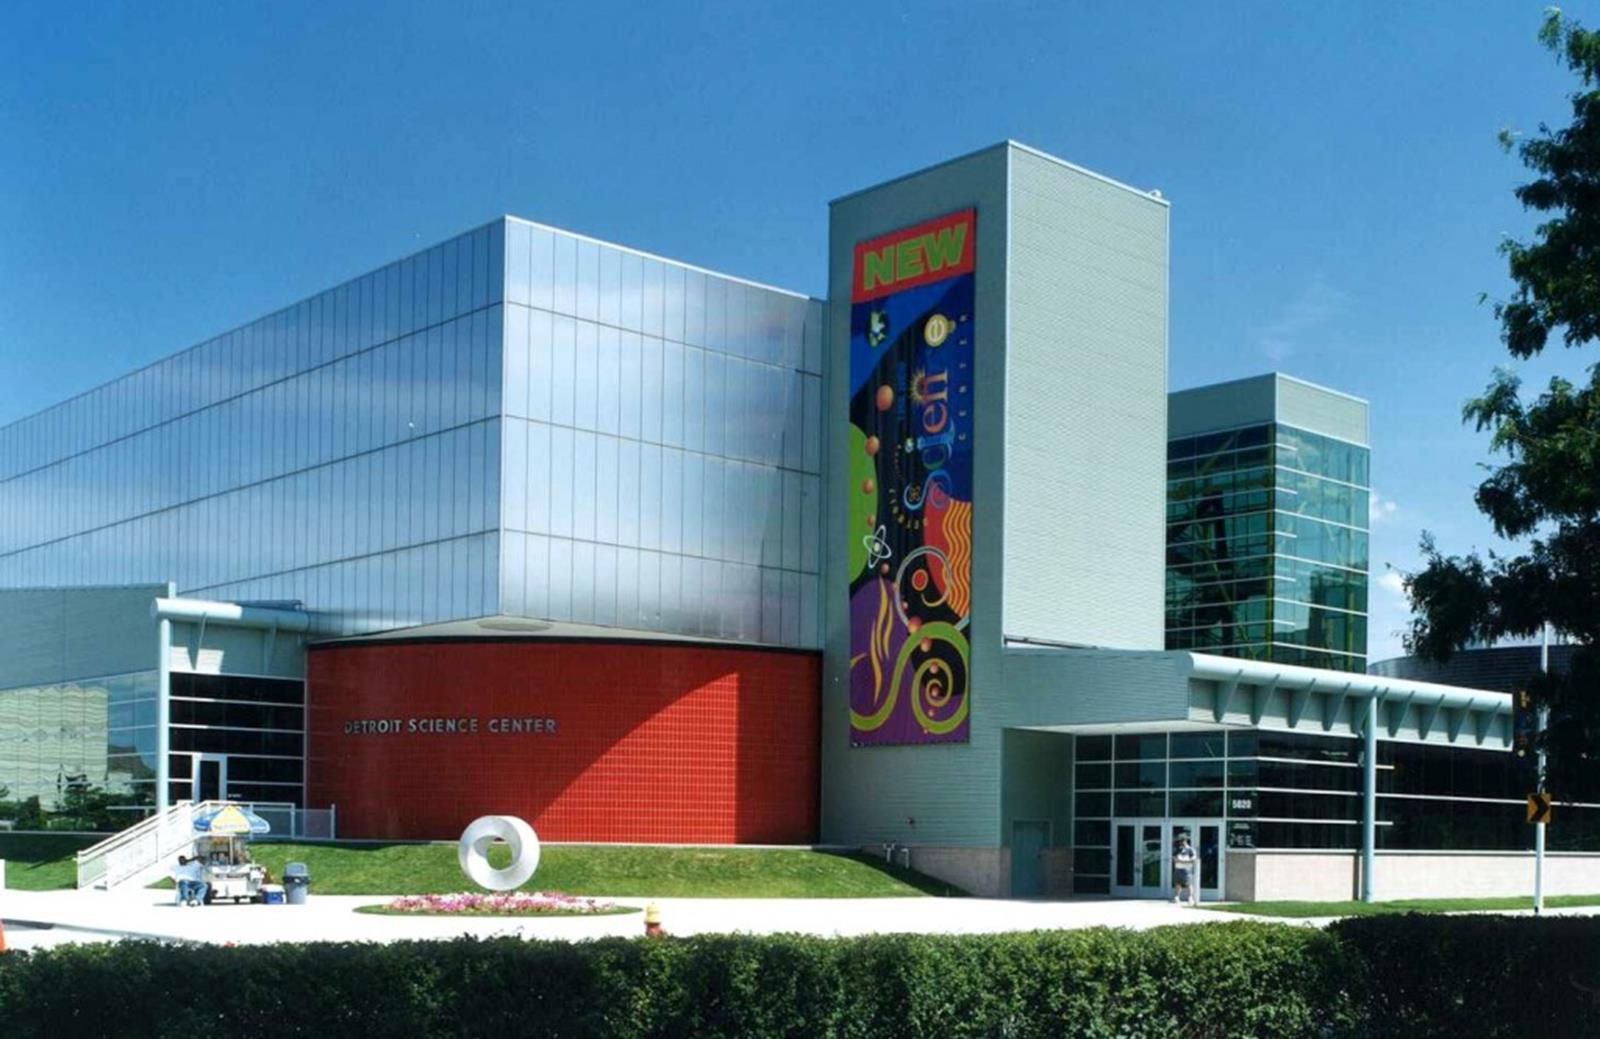 The Detroit Science Center